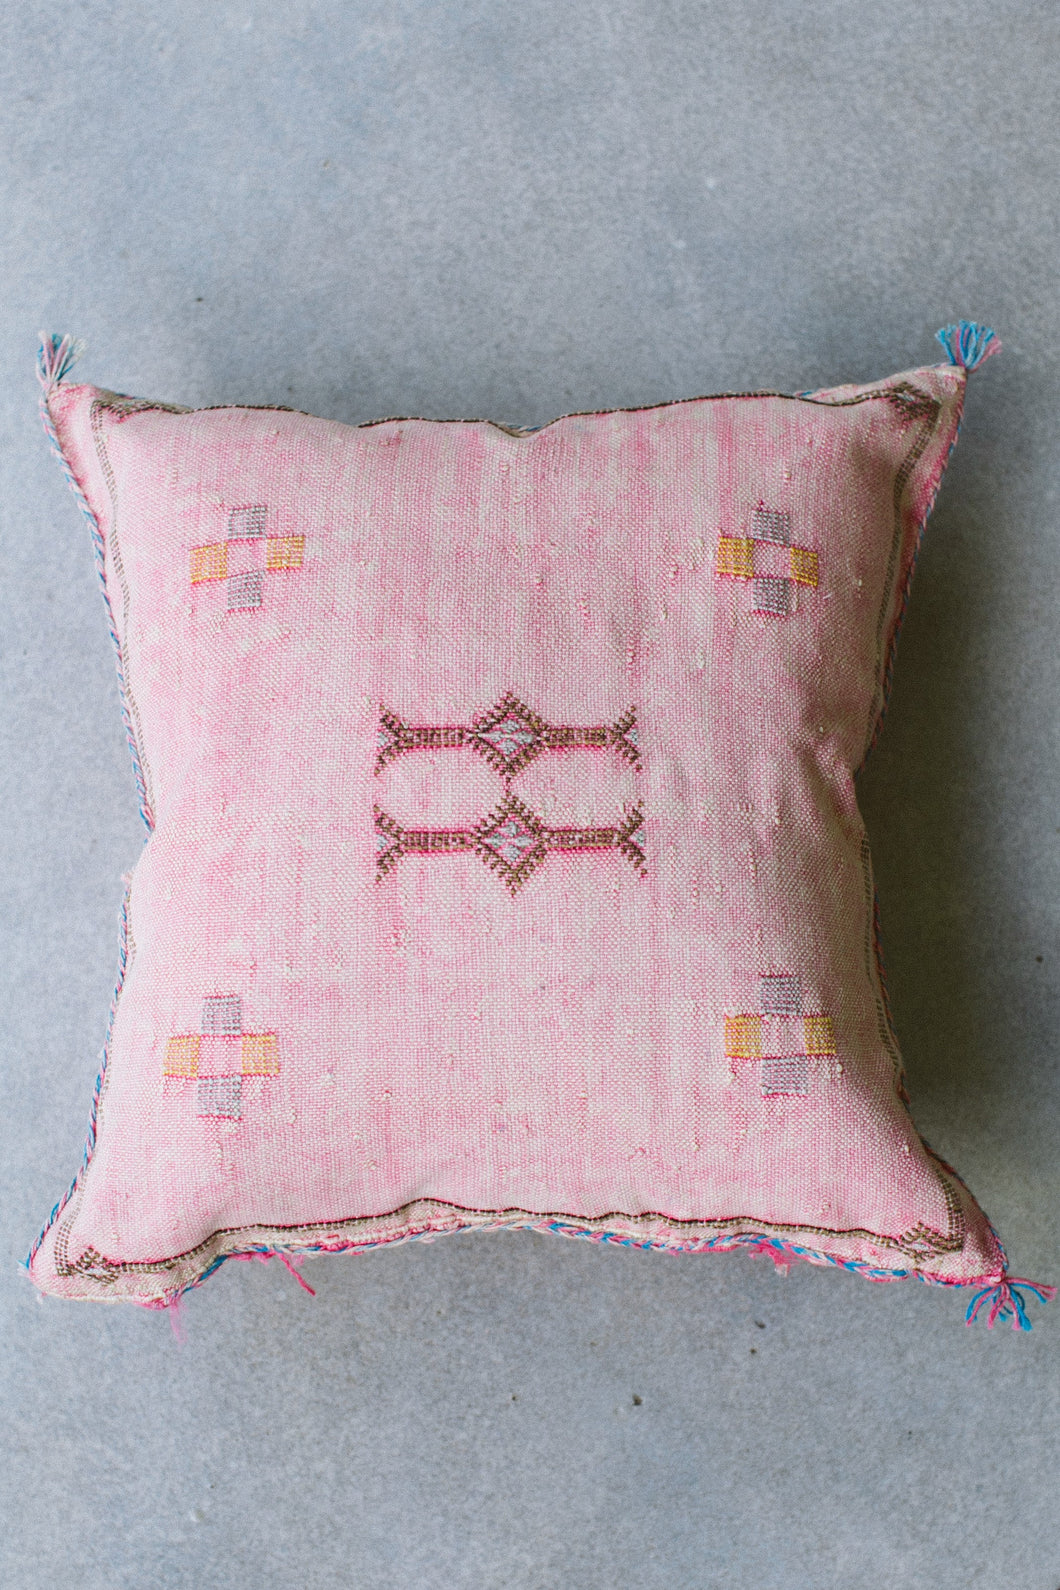 Cactus Silk Pillow - Pink #2